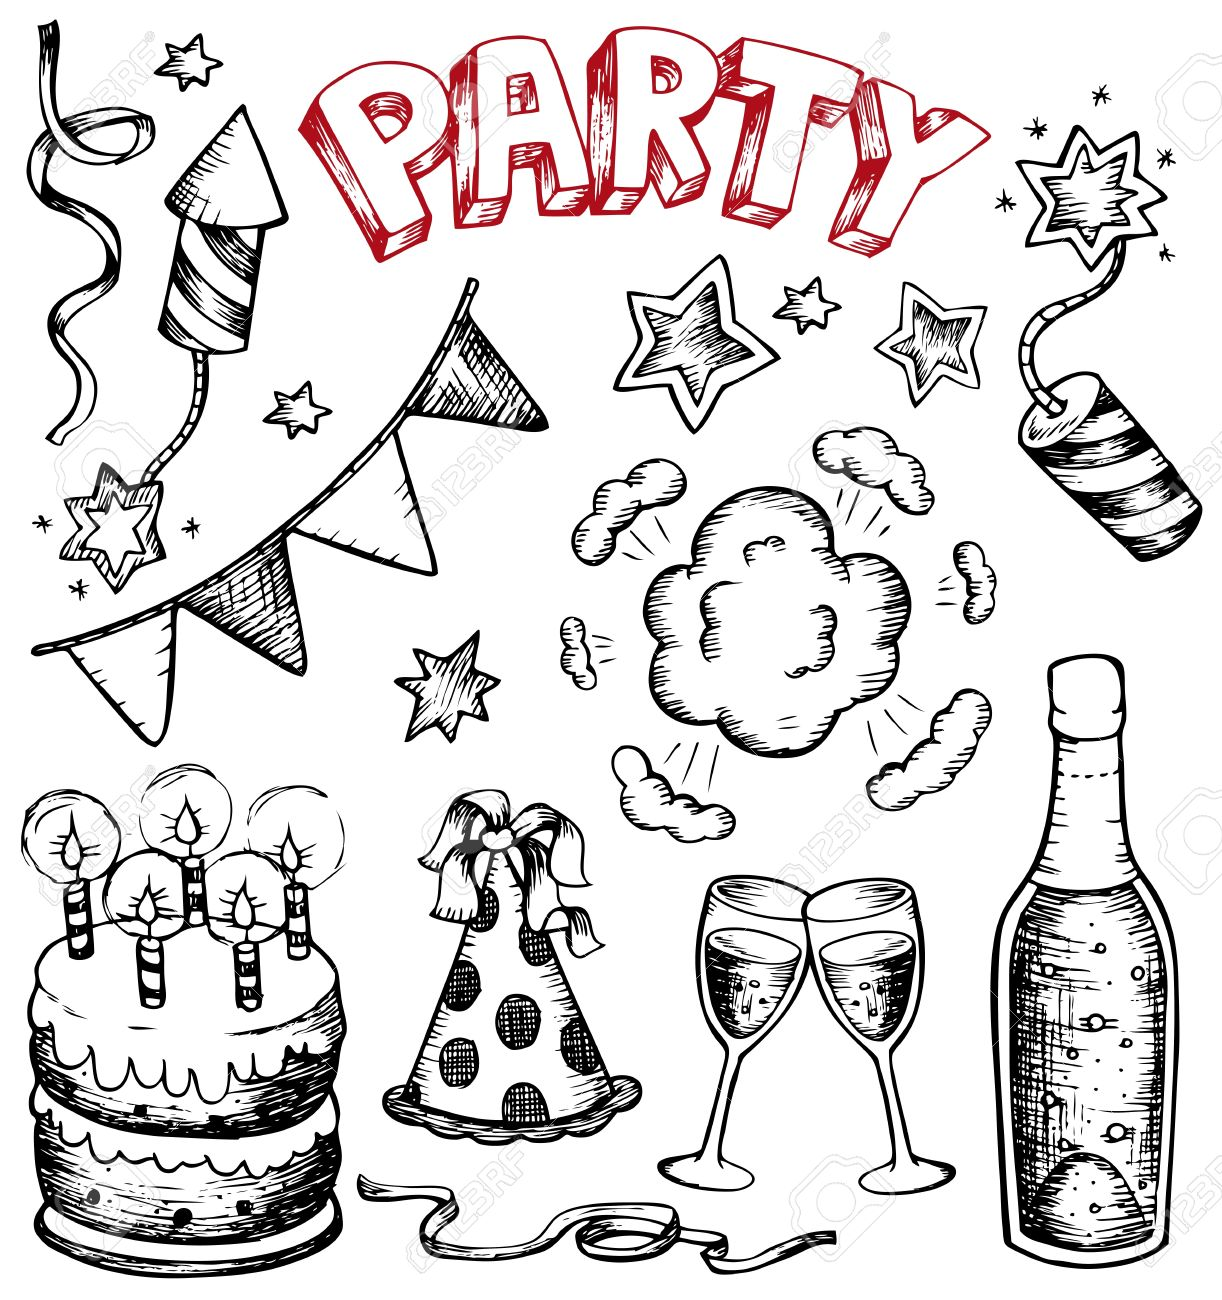 Party drawings collection 1 - vector illustration. Stock Vector - 11654789